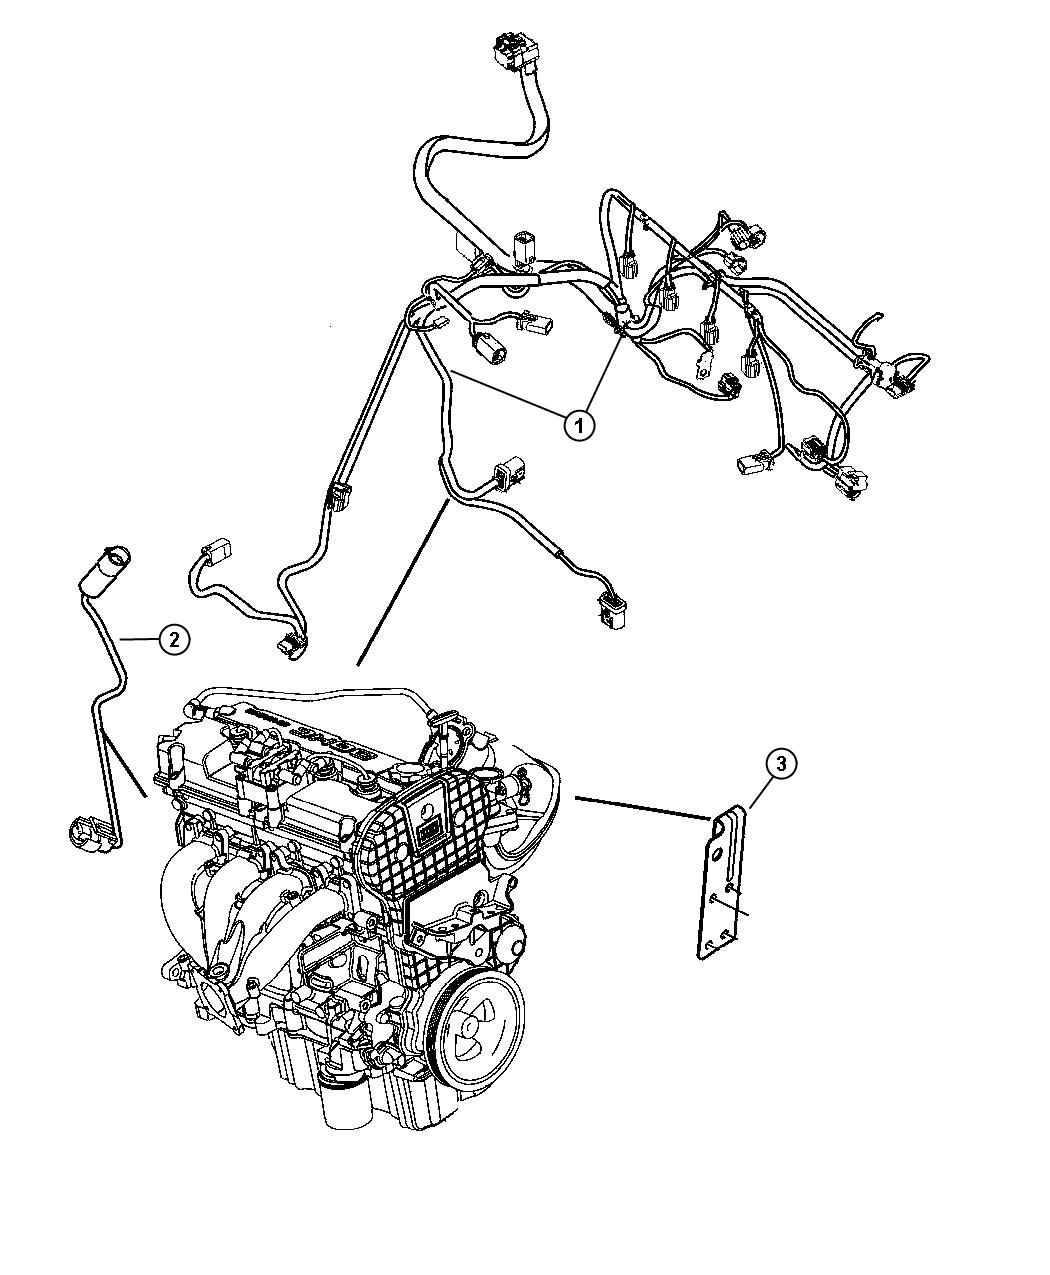 2007 Chrysler Sebring Wiring  Engine